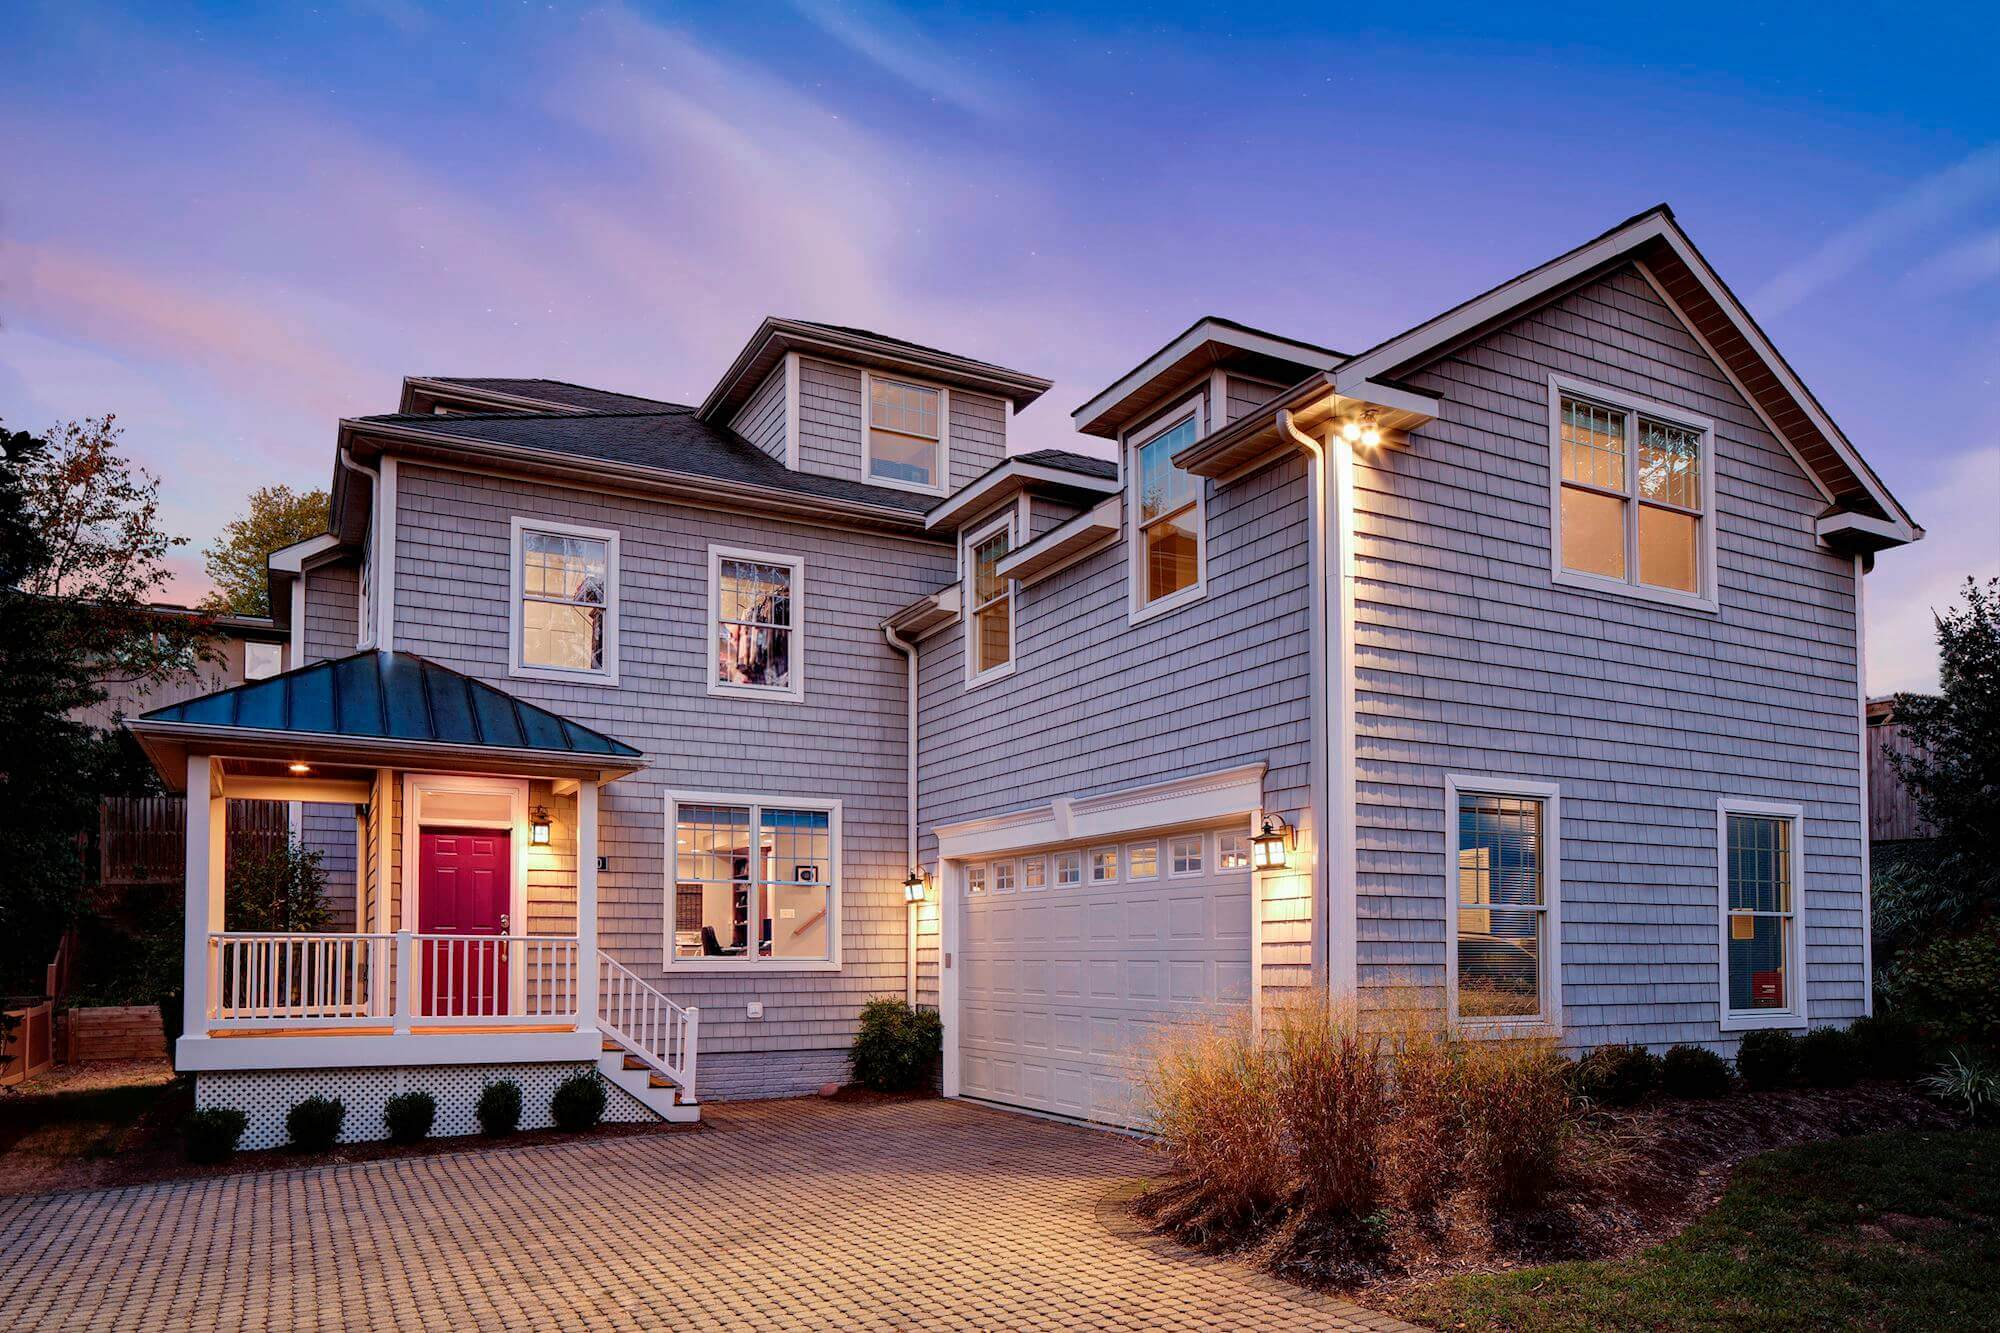 Two story single family home with a red door